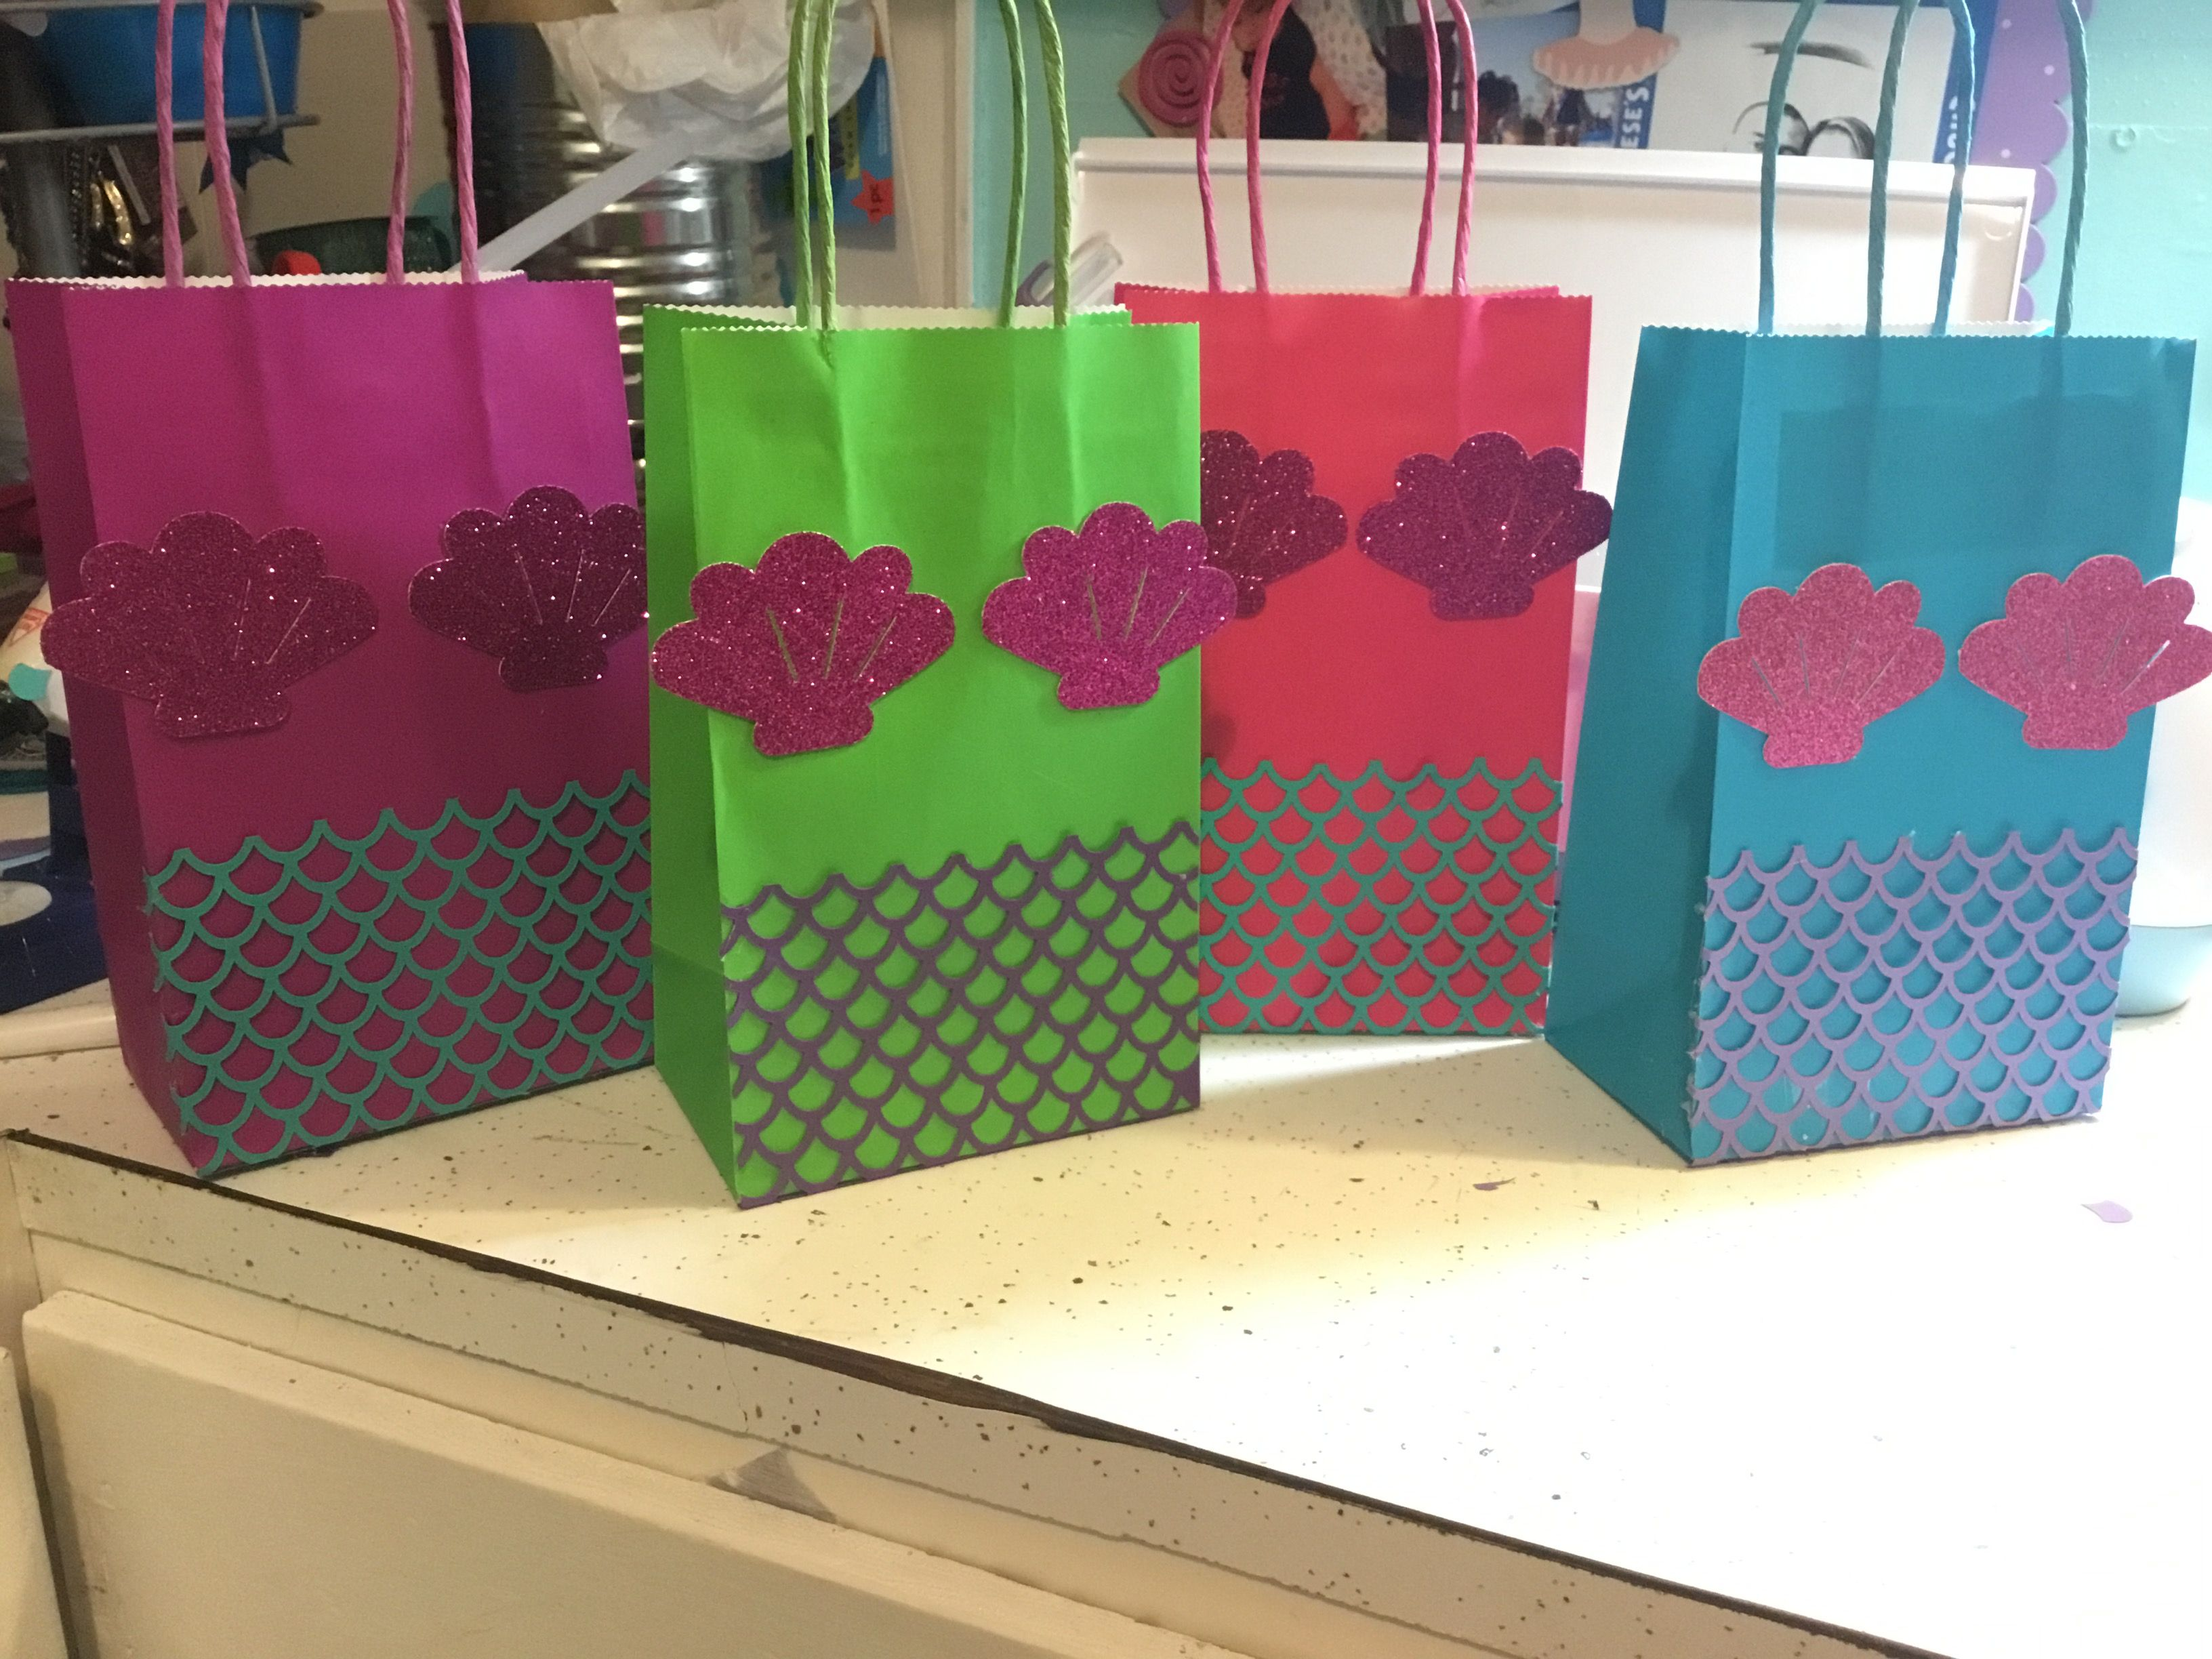 Mermaid Gift Ideas Treat Bags Candy Bags Made With My Cricut For Little